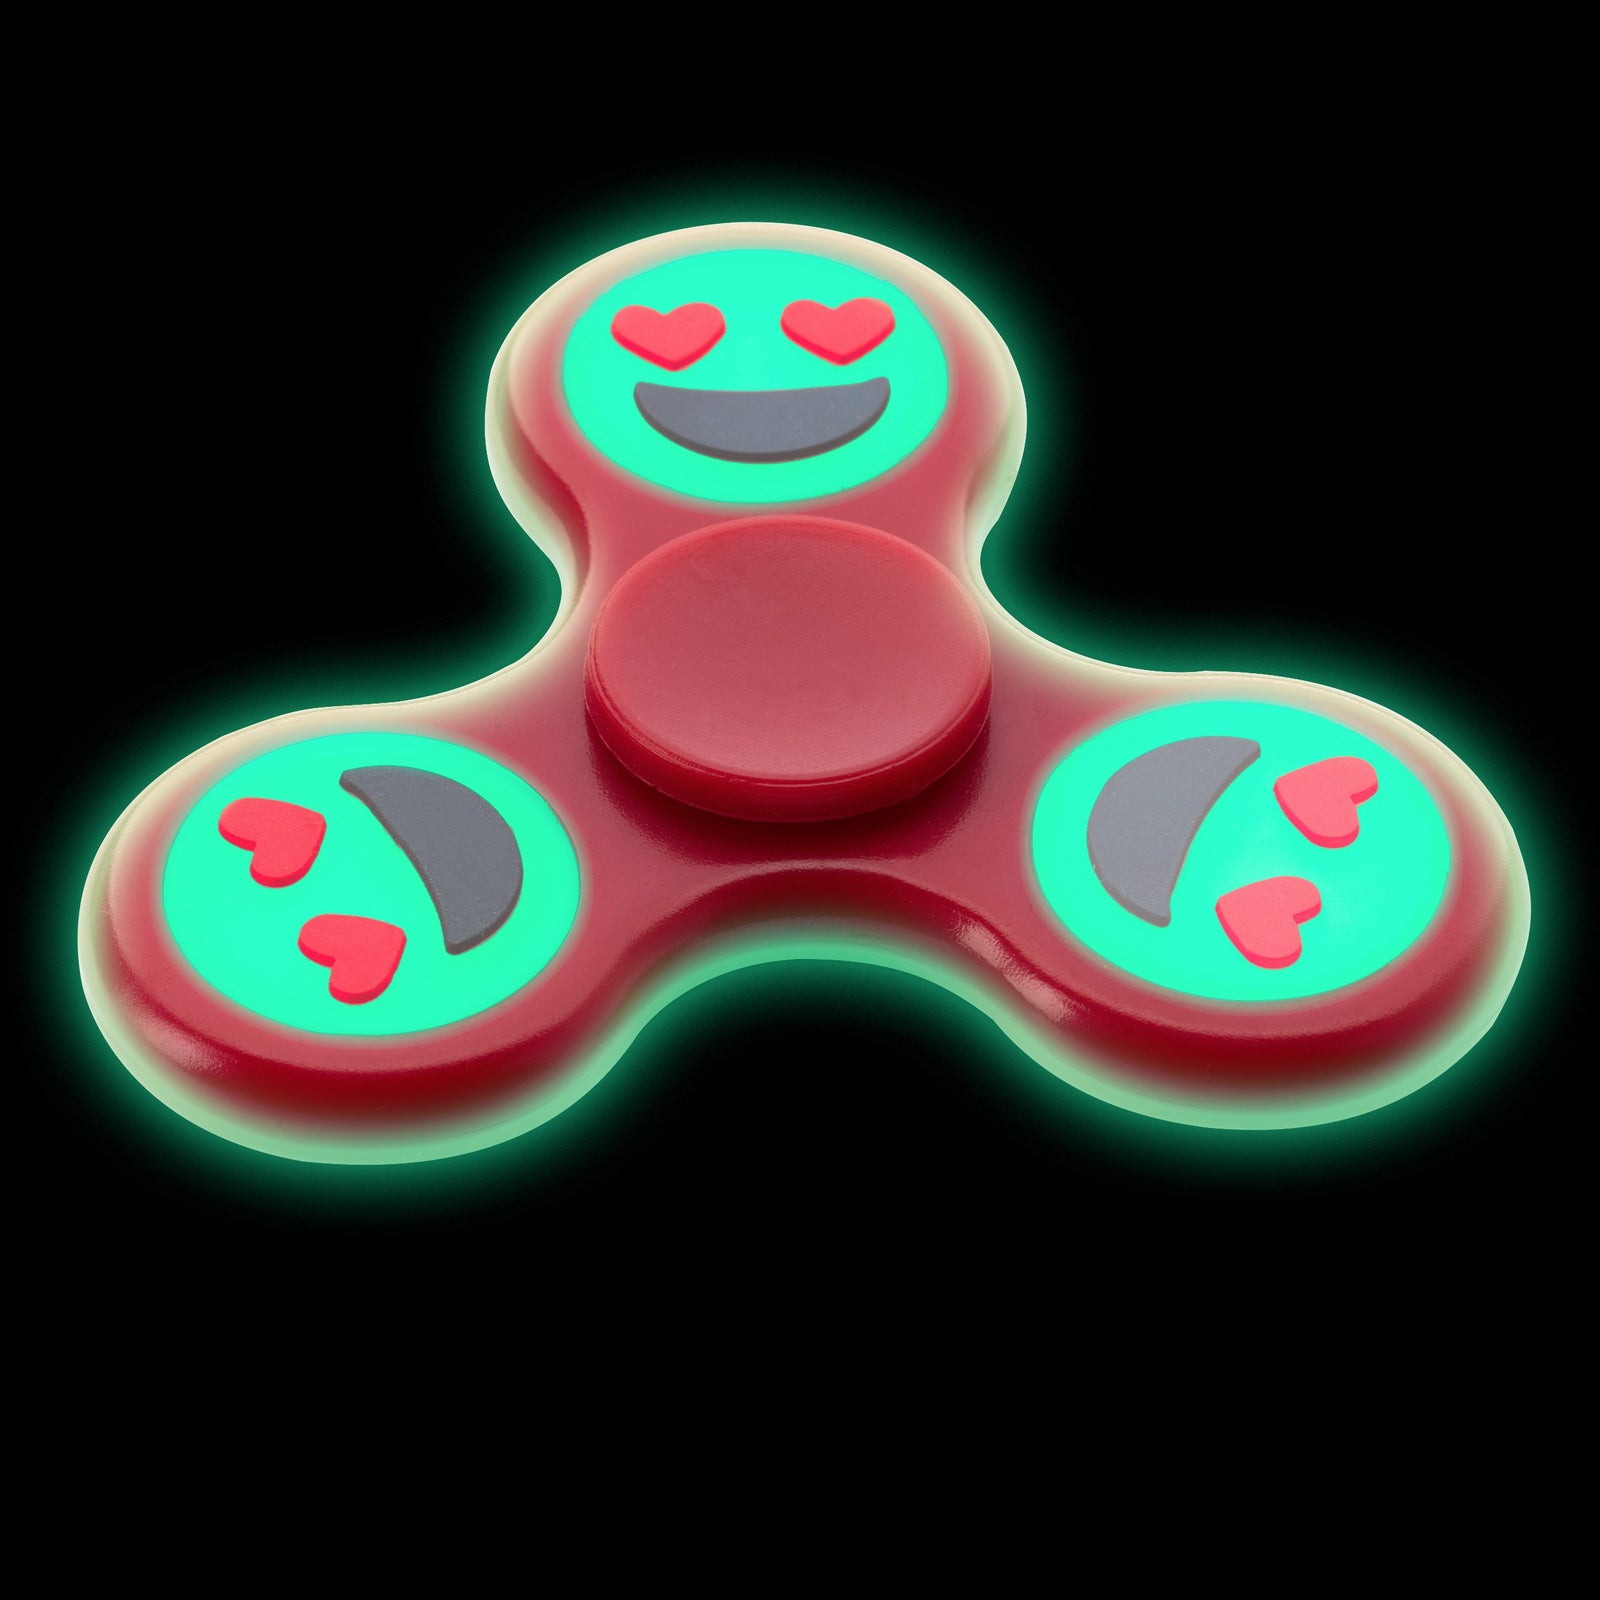 Glowing Emoji Fidget Spinner - Flashwear LED Fidget Spinner - LED Smartphone Fans - Light Up Shirts